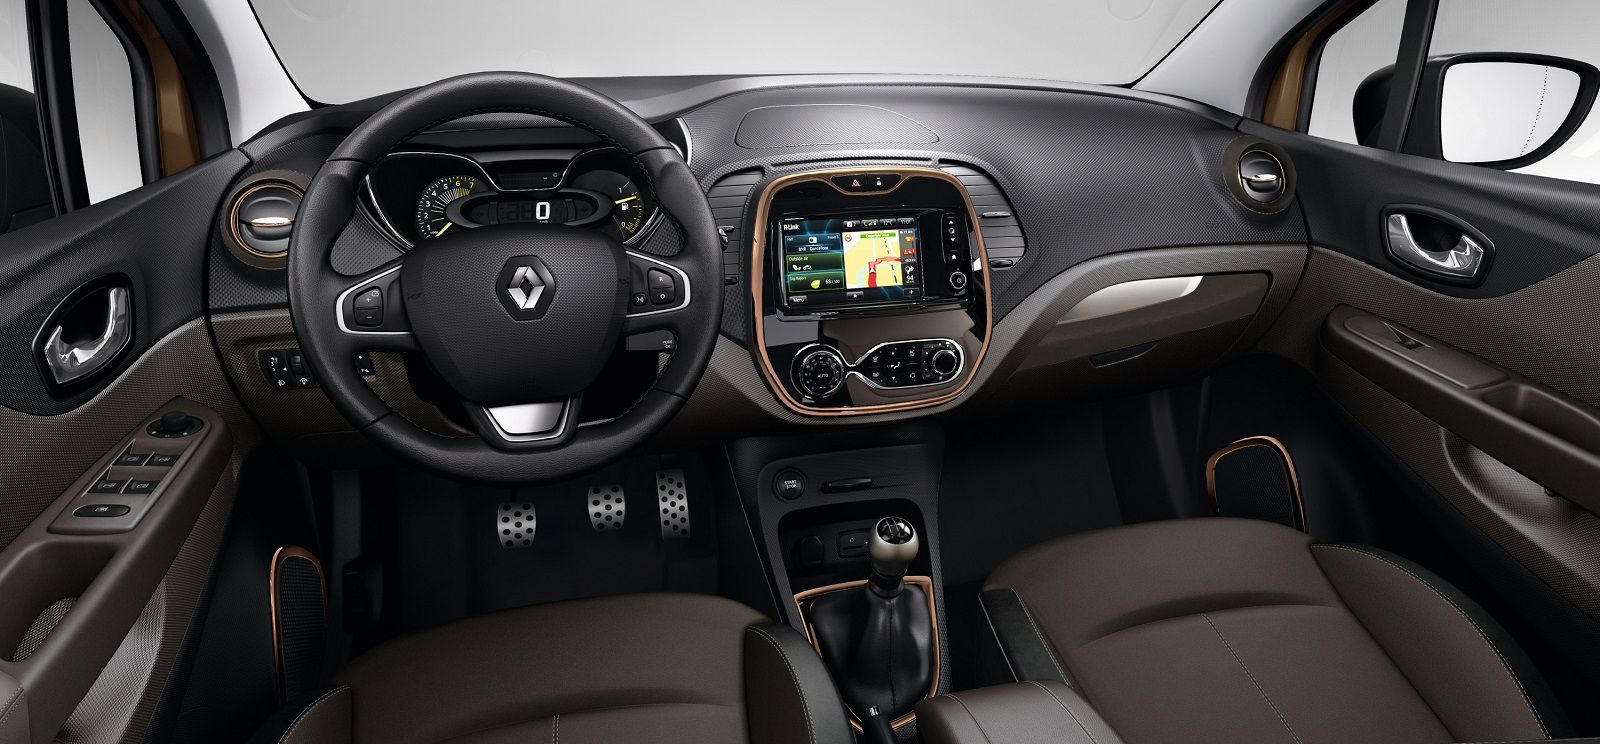 Renault captur iconic special edition released carwow for Interior renault captur